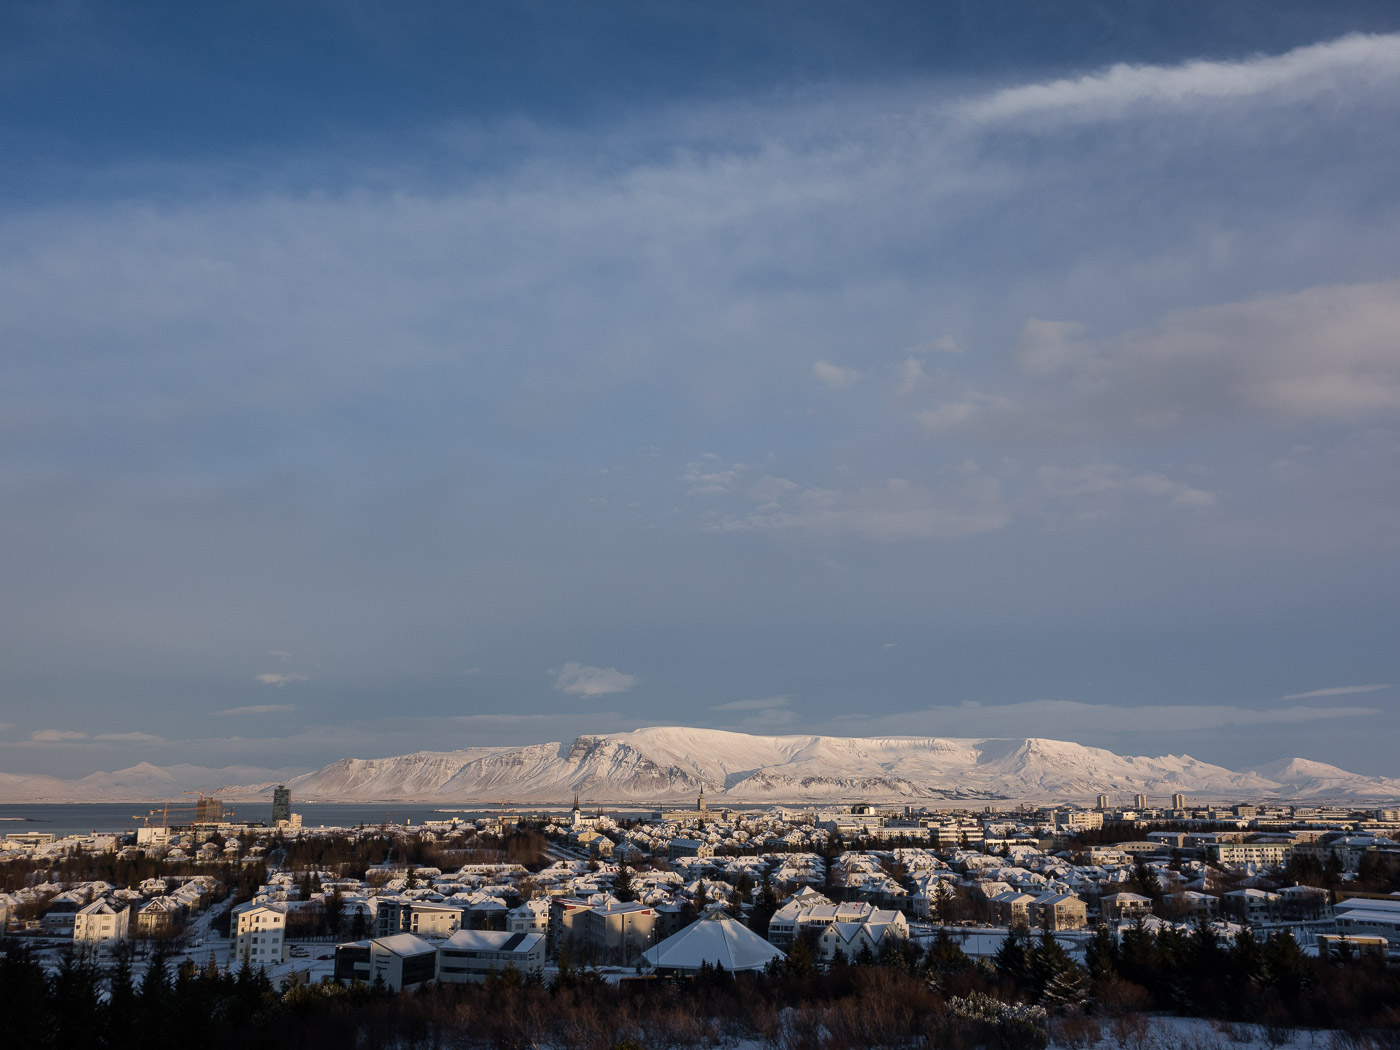 Reykjavík. Miscellaneous LXXXIII. - Weather and winter. V. (9 till 29 January 2015)